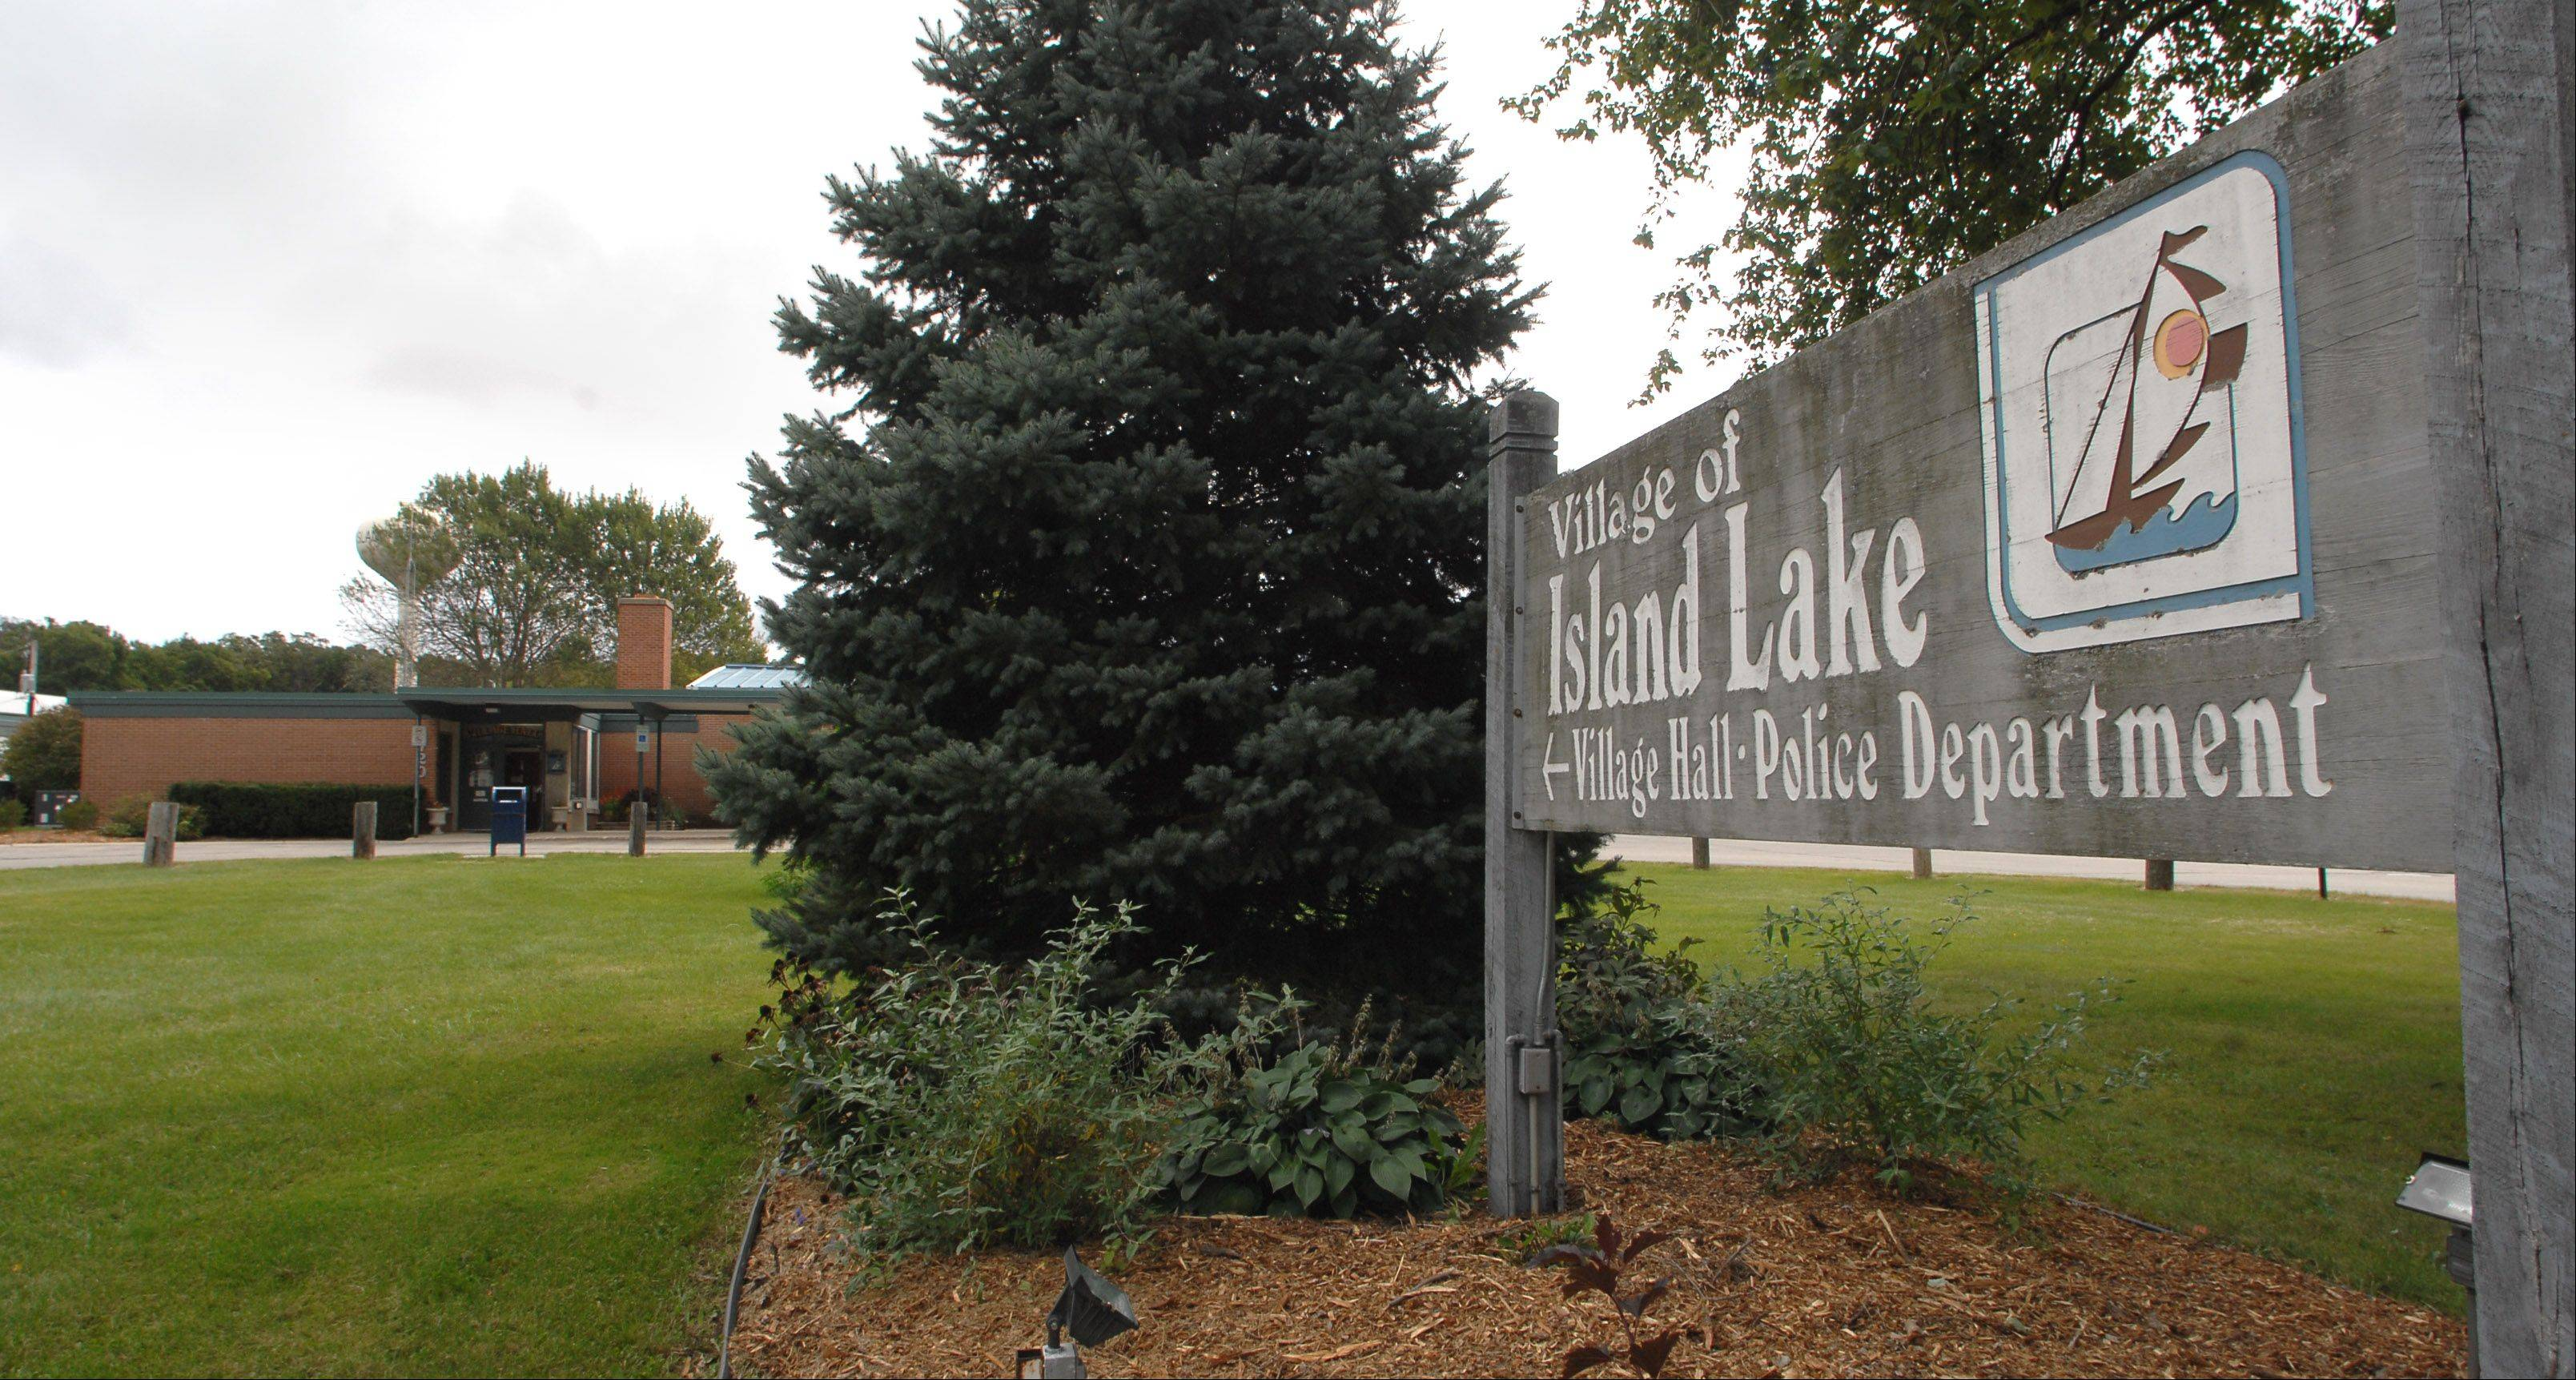 The attorney general's office has dismissed complaints from an ex-cop about Island Lake's Facebook page.